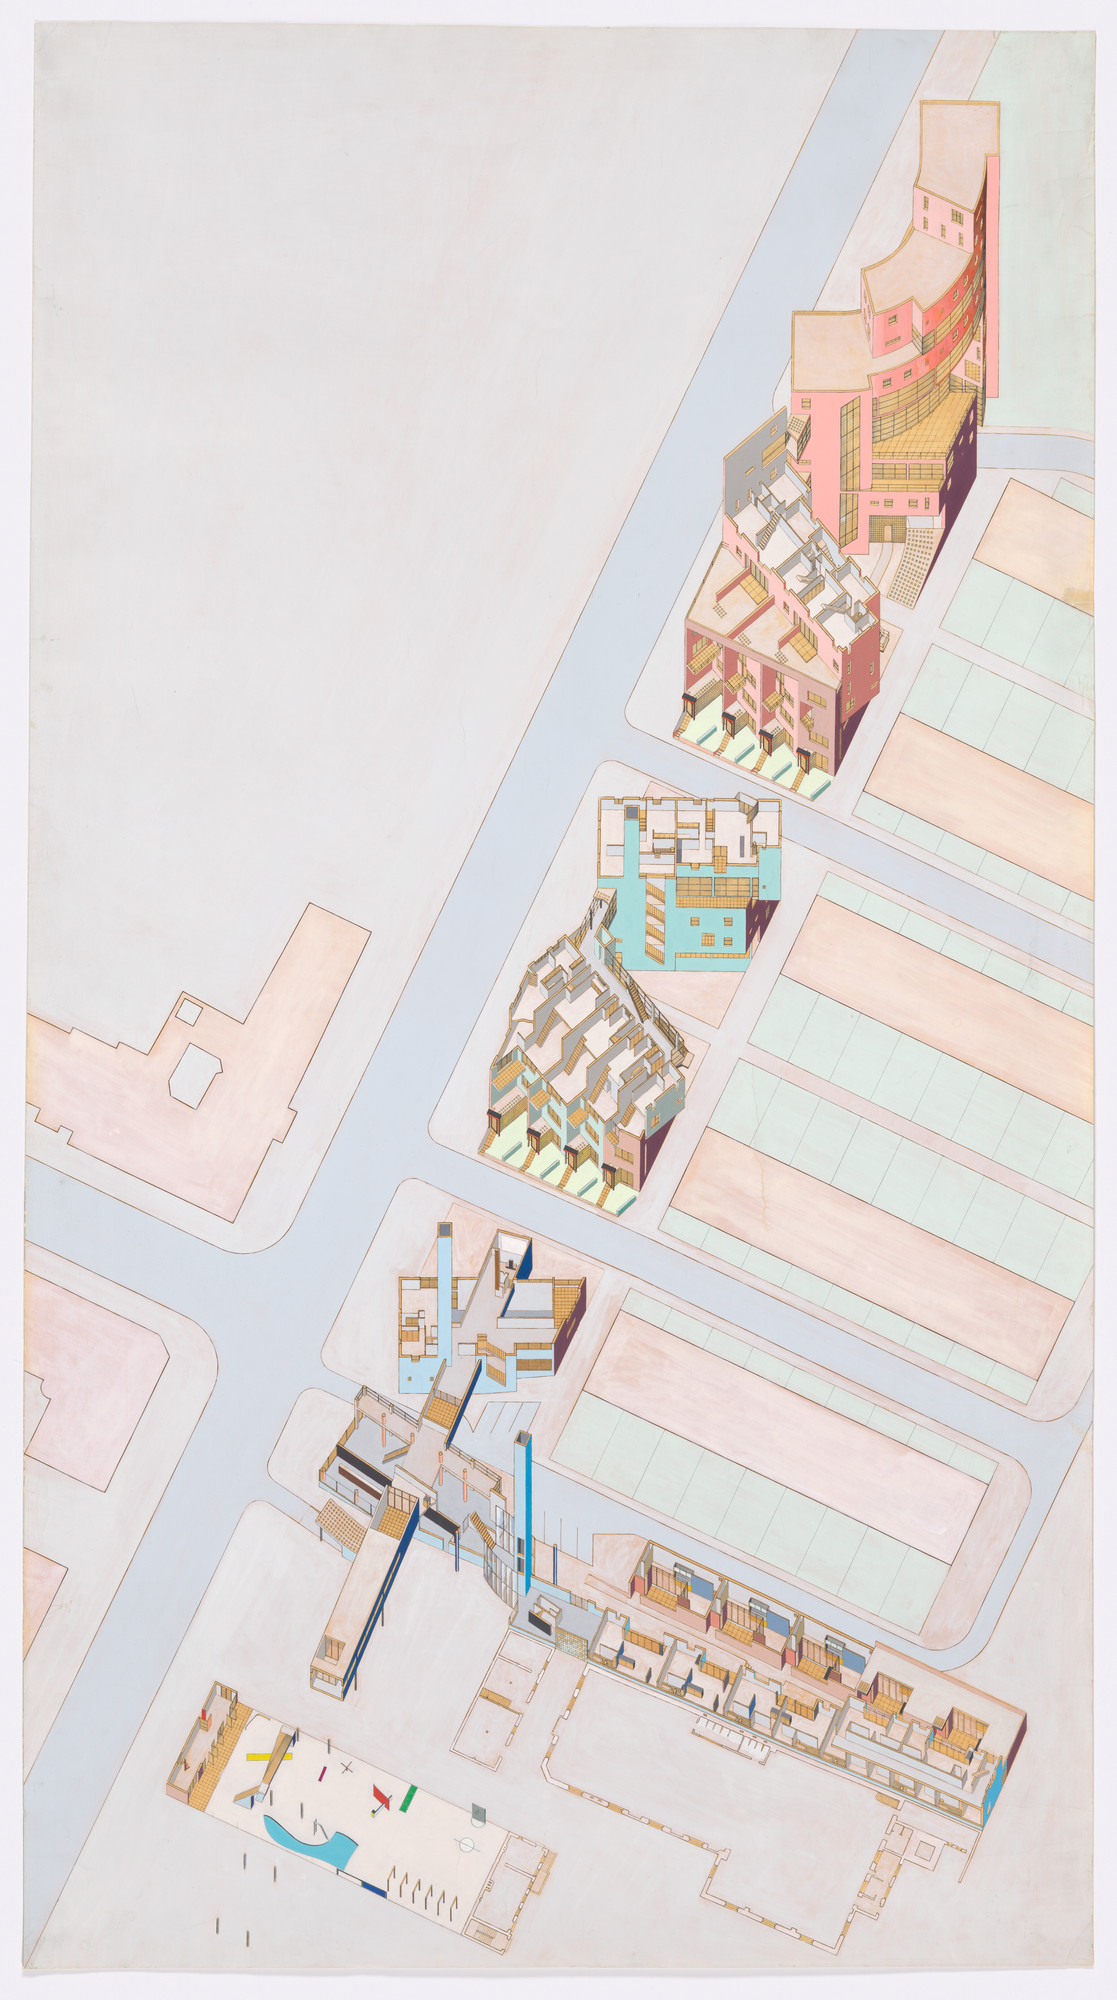 Elia Zenghelis, Zoe Zenghelis. Lützowstrasse Housing, IBA Housing Competition project, Berlin, Germany (Cutaway axonometric). 1980